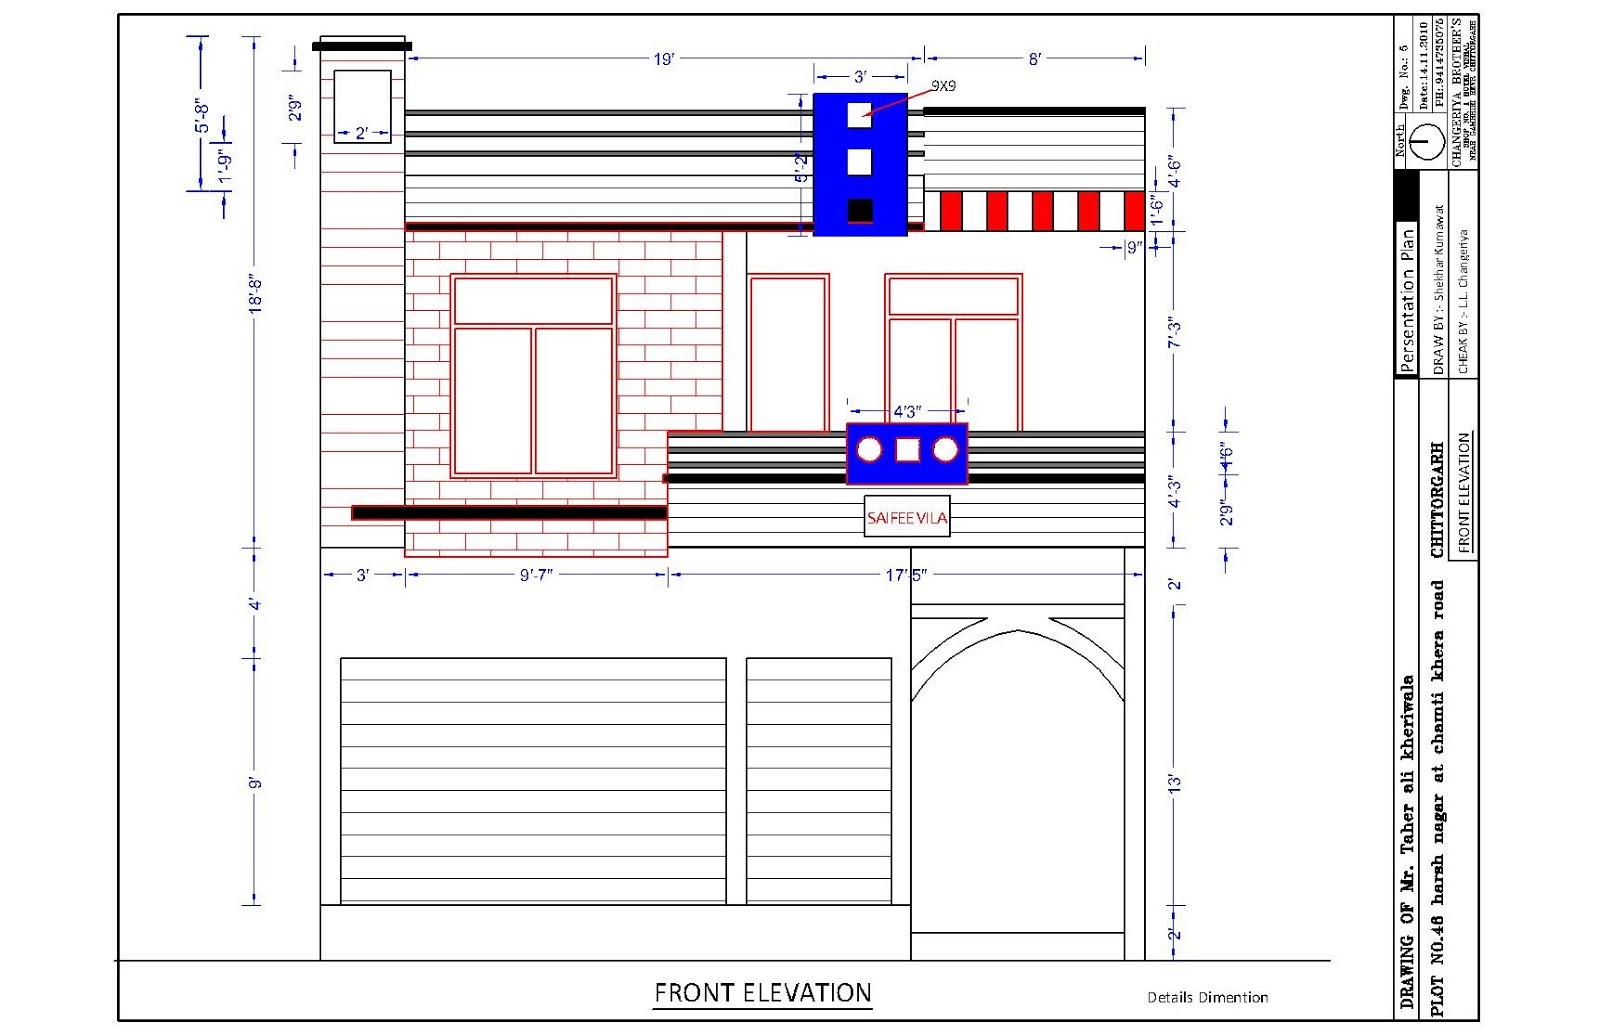 Front Elevation In 2d : Naksha house plan d com joy studio design gallery